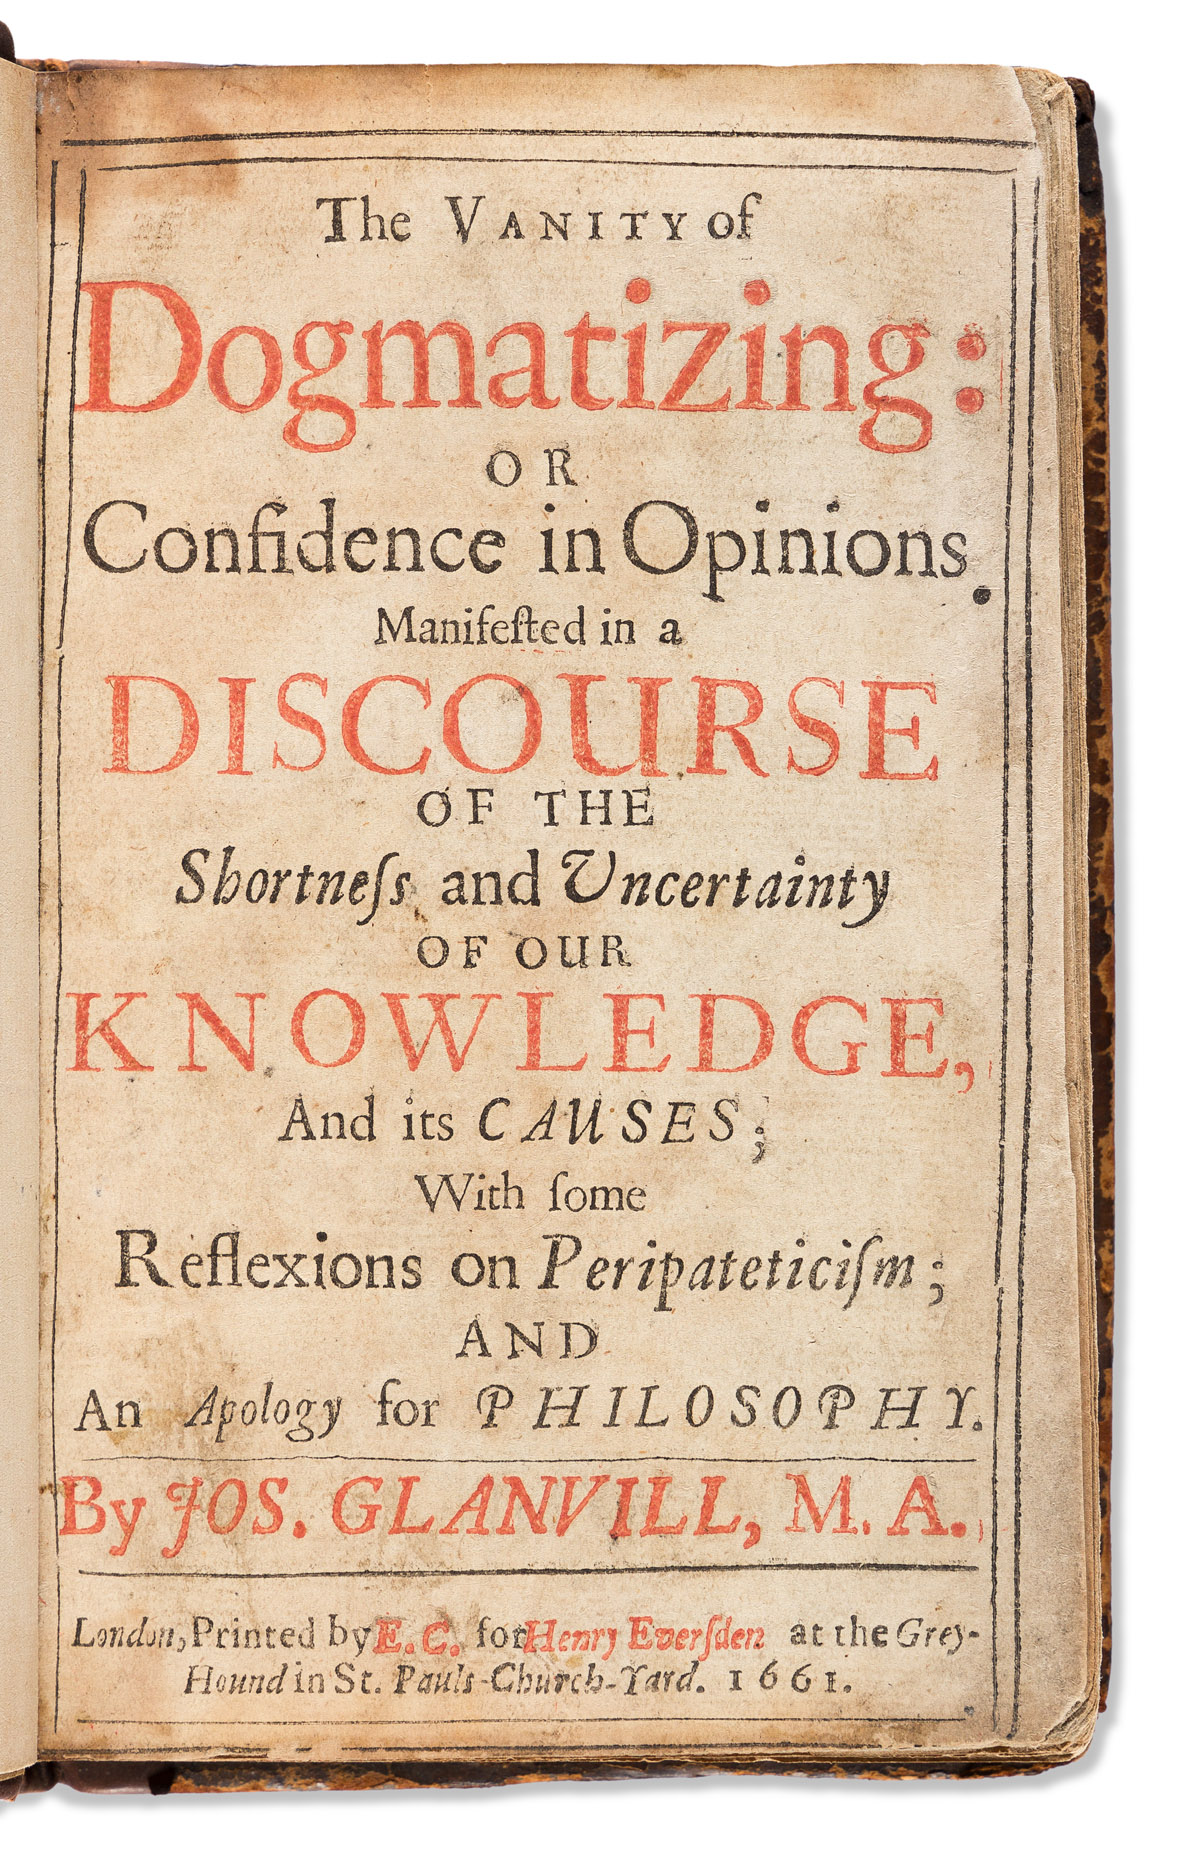 Glanvill, Joseph (1636-1680) The Vanity of Dogmatizing: or Confidence in Opinions Manifested in a Discourse of the Shortness and Uncert